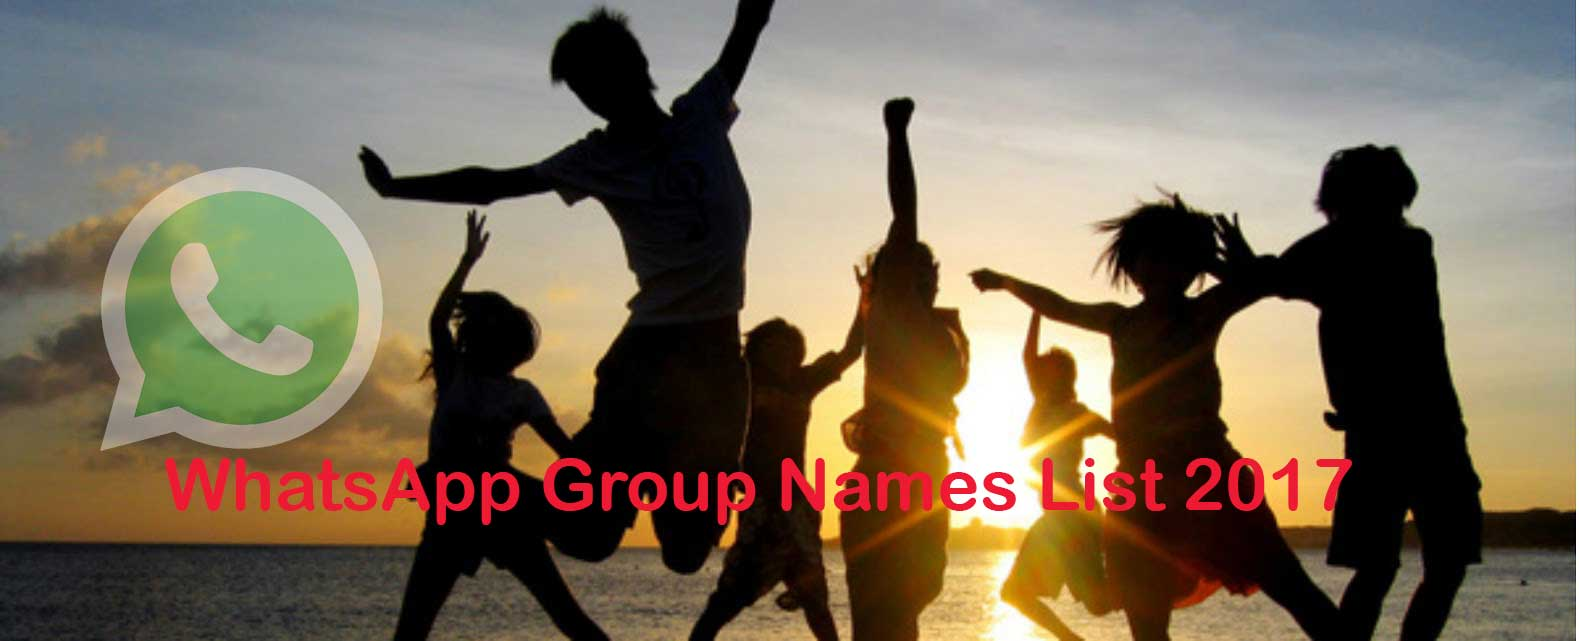 whatsapp-group-names-list-cool-best-funny-friends-colleagues